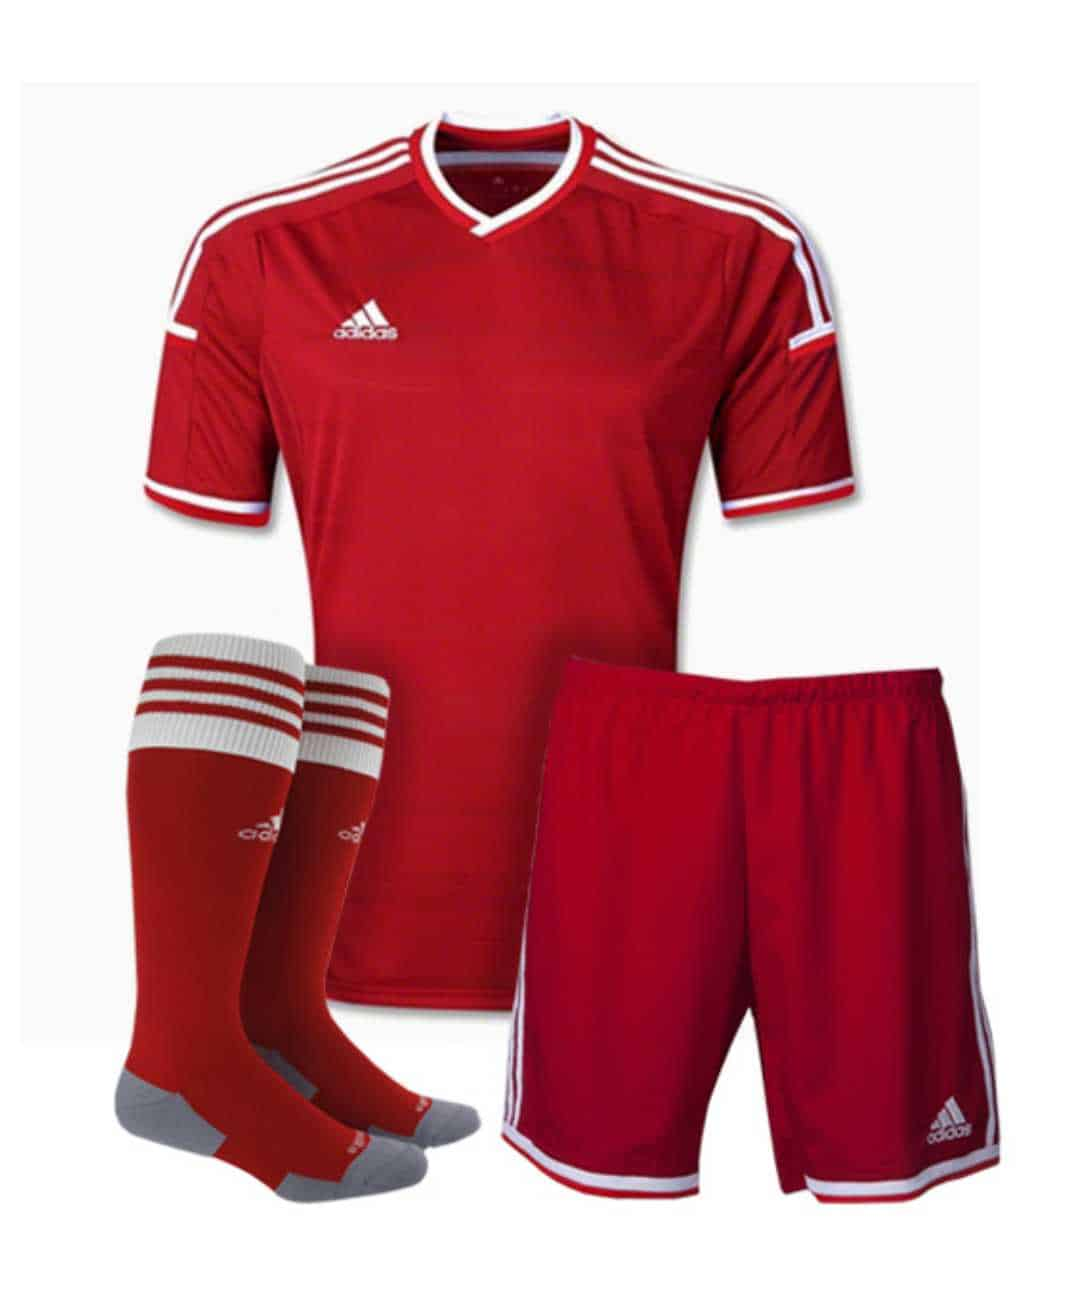 Soccer Club Uniform 55